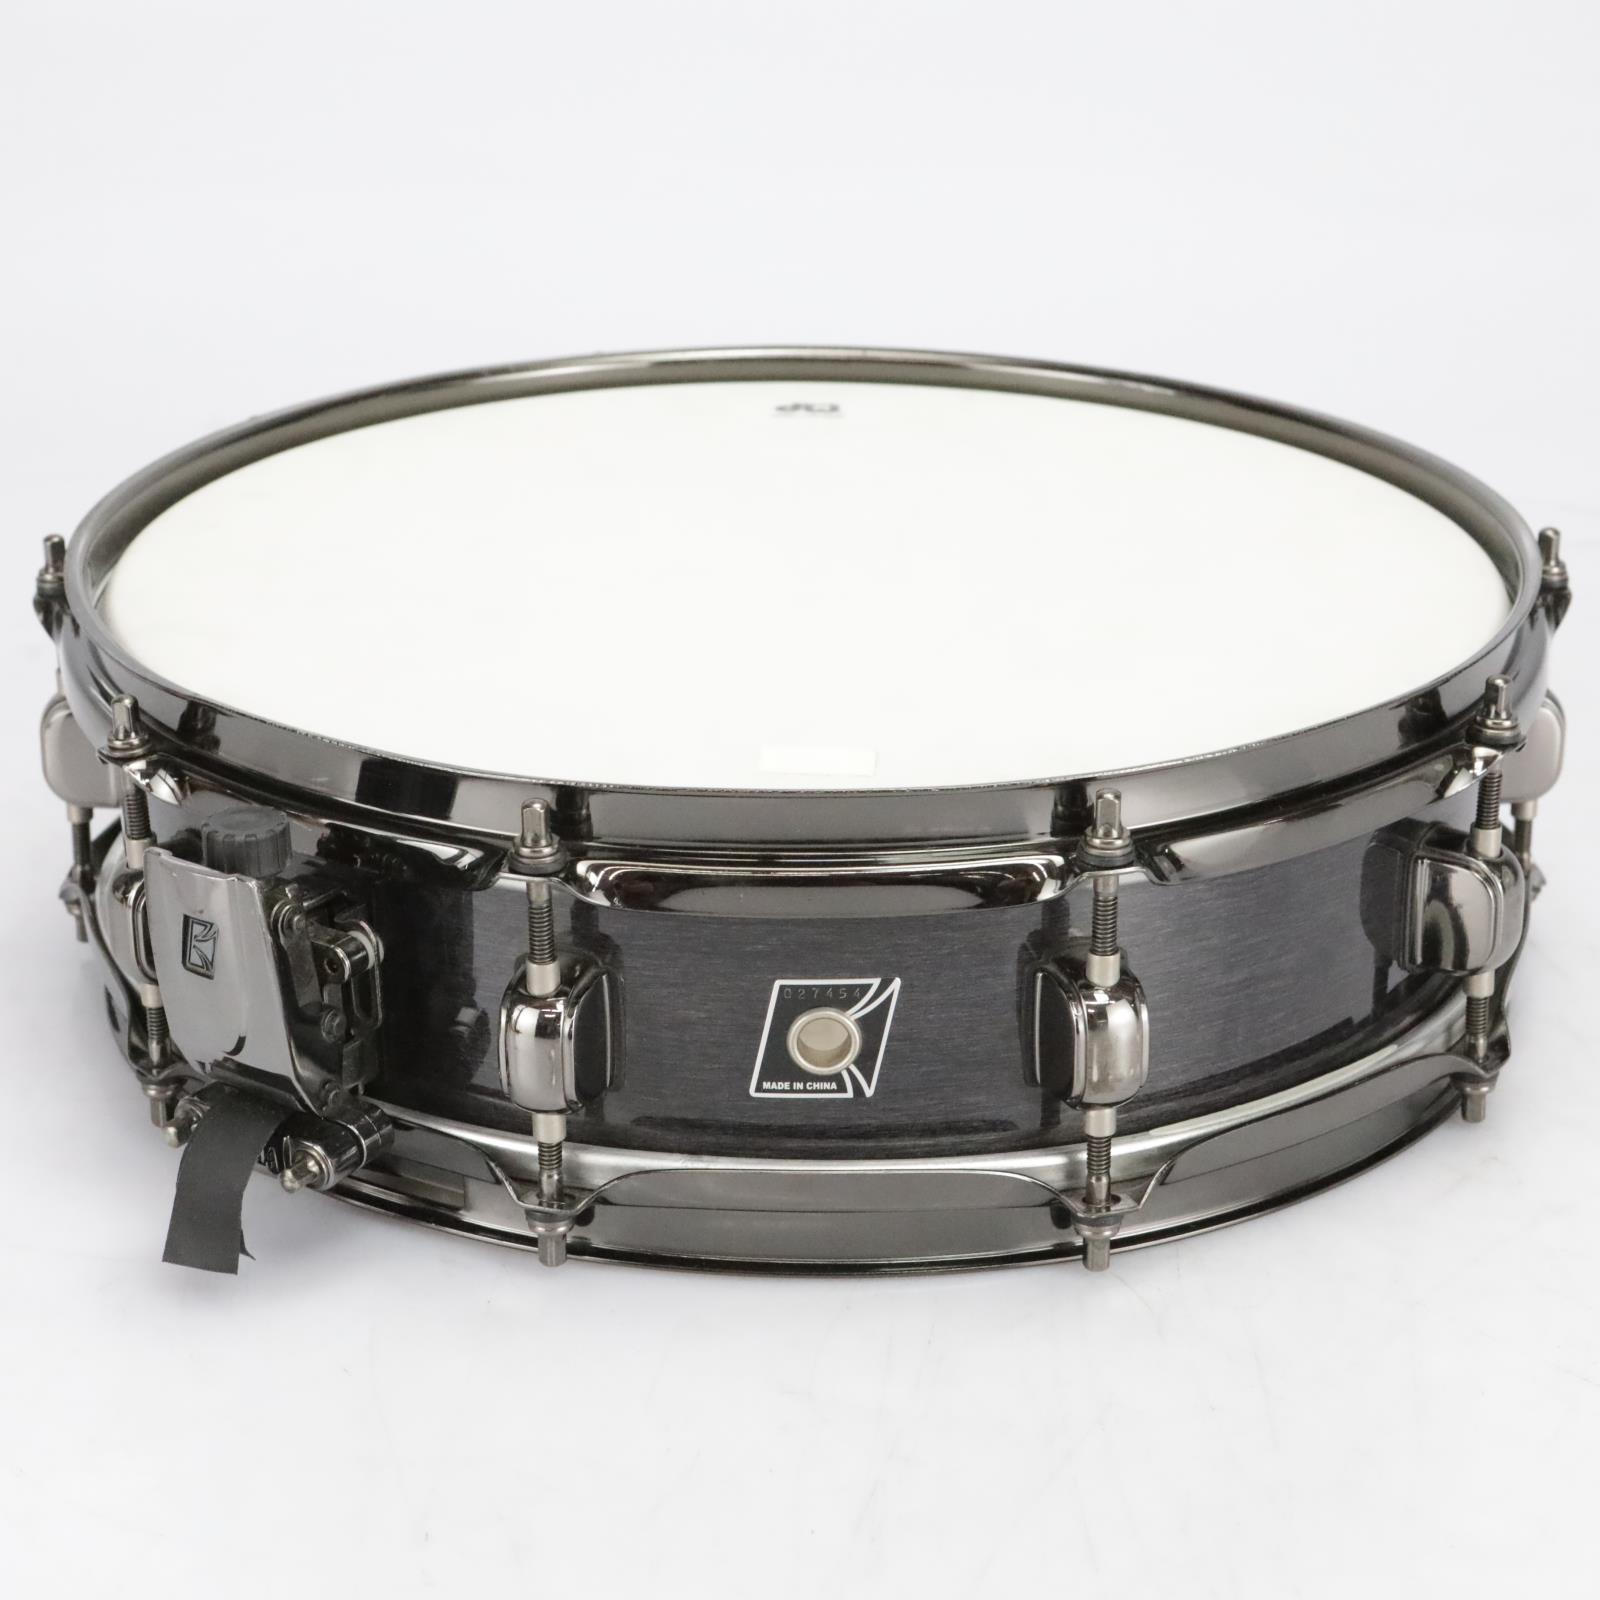 """Tama Piccolo Snare Drum Brushed Steel Satin Black 14"""" X 4"""" #41047"""